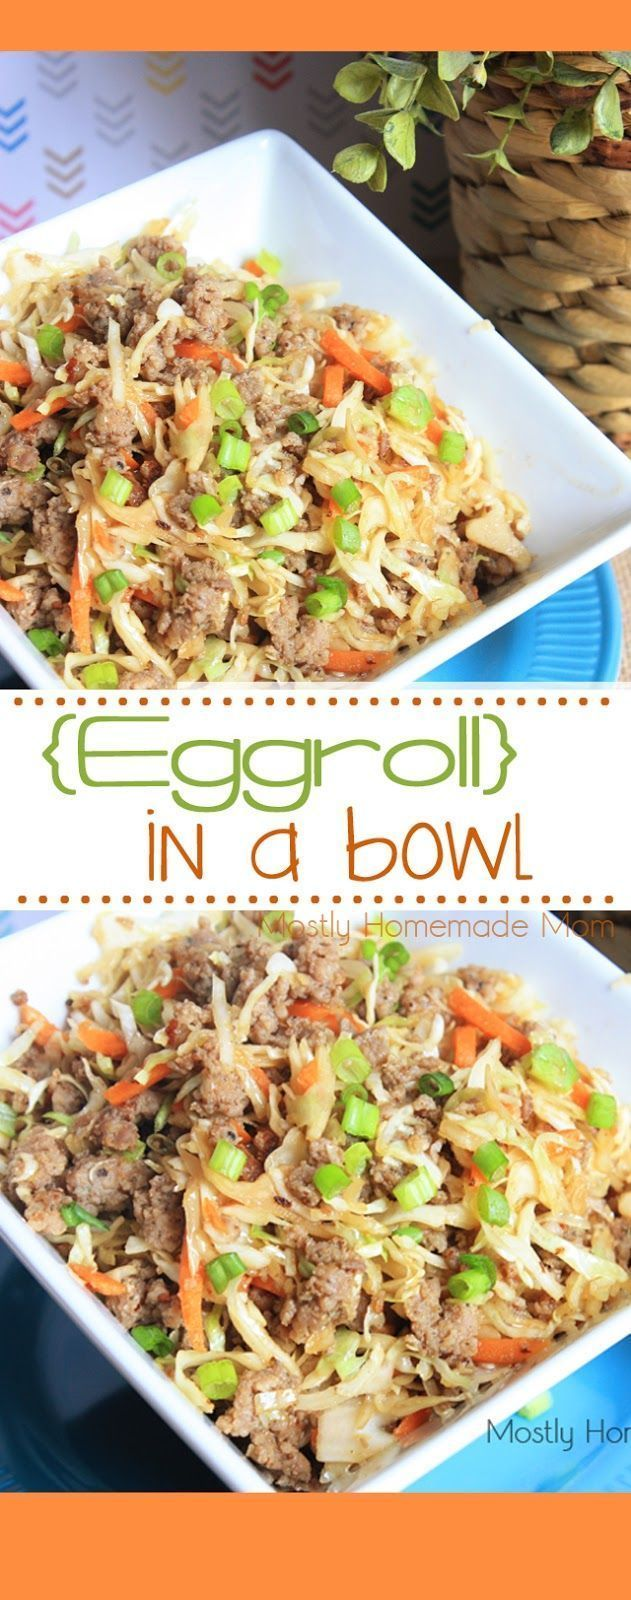 Eggroll In A Bowl- This Eggroll in a Bowl recipe has all the flavors of a traditional egg roll, cooked in a skillet, without the fried wrapper! The low carb way to enjoy your favorite Chinese takeout food!